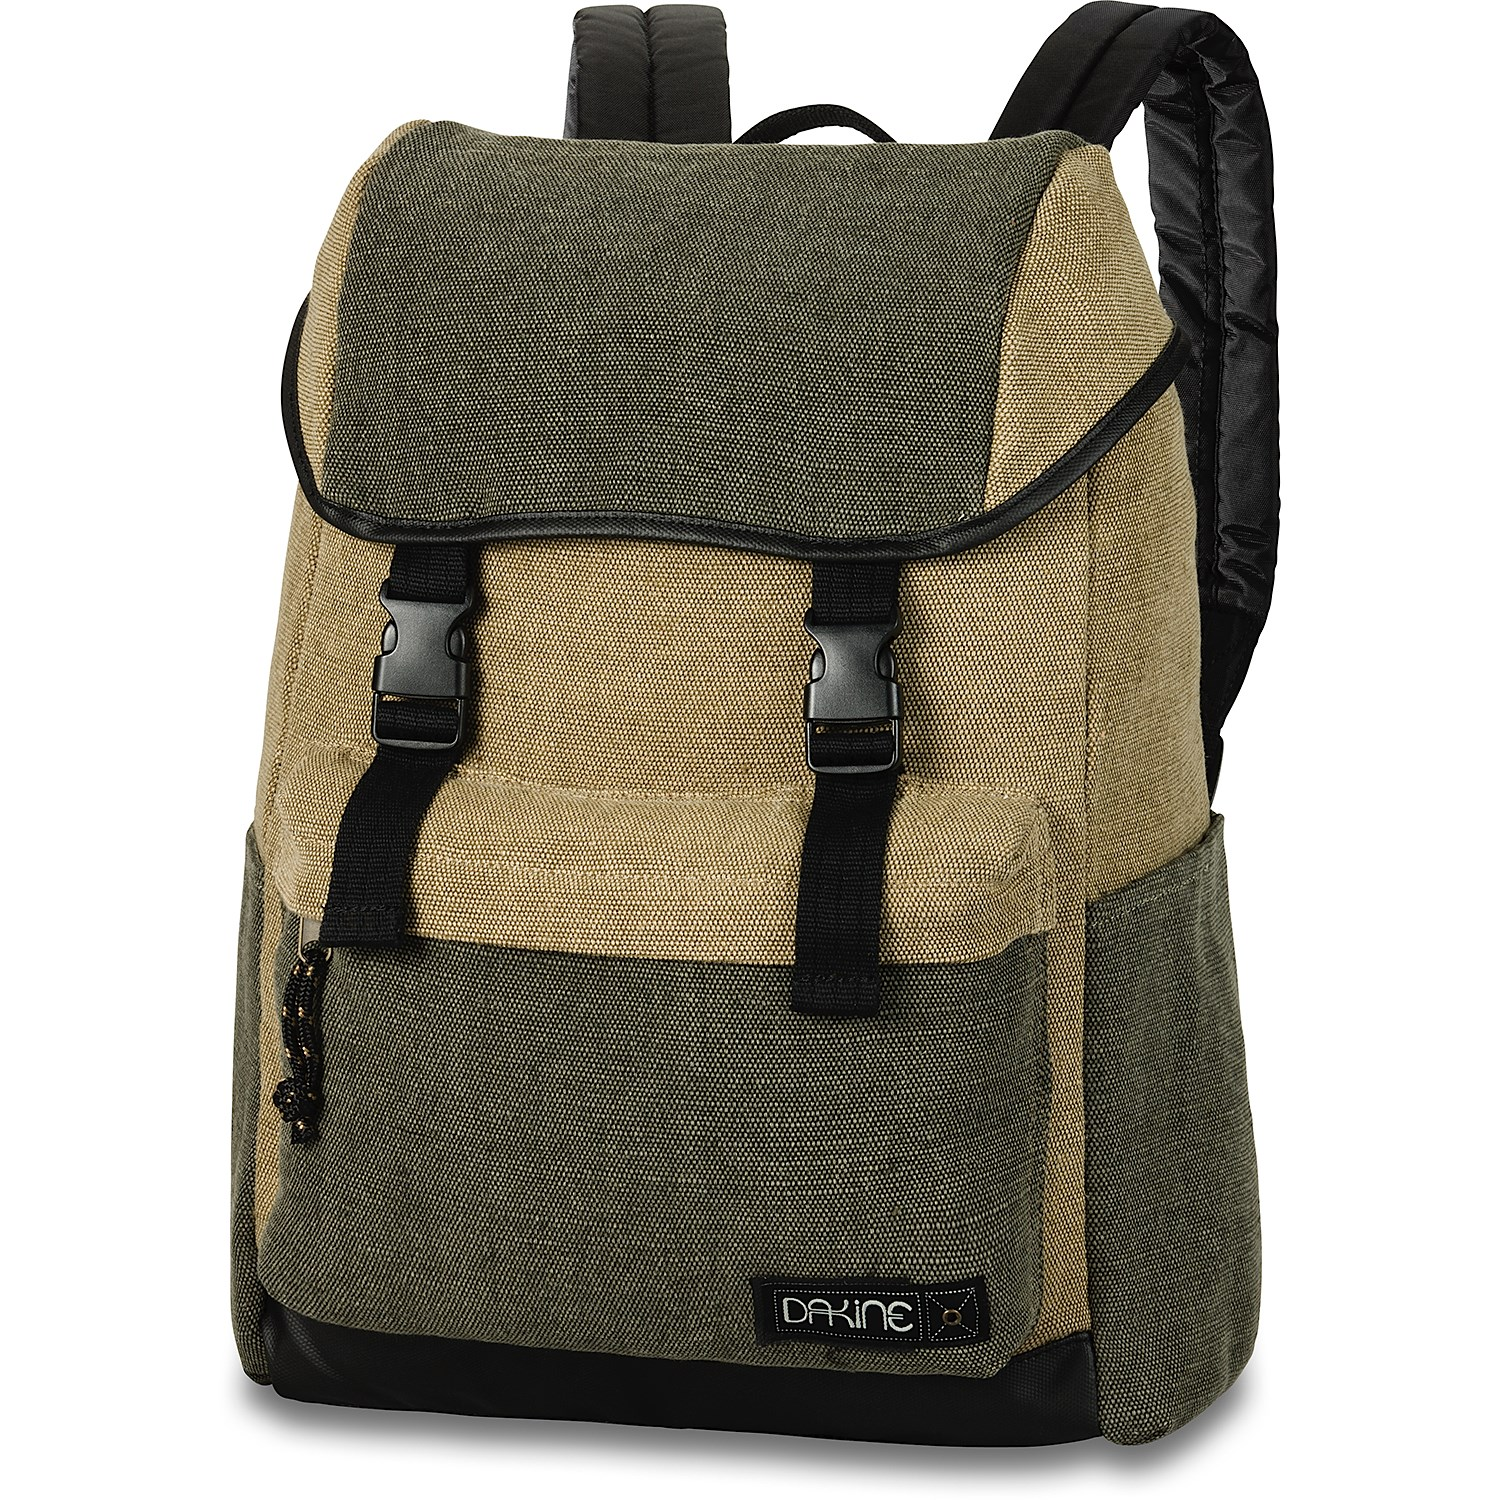 Backpack Tools - Fashion Backpacks Collection | - Part 695